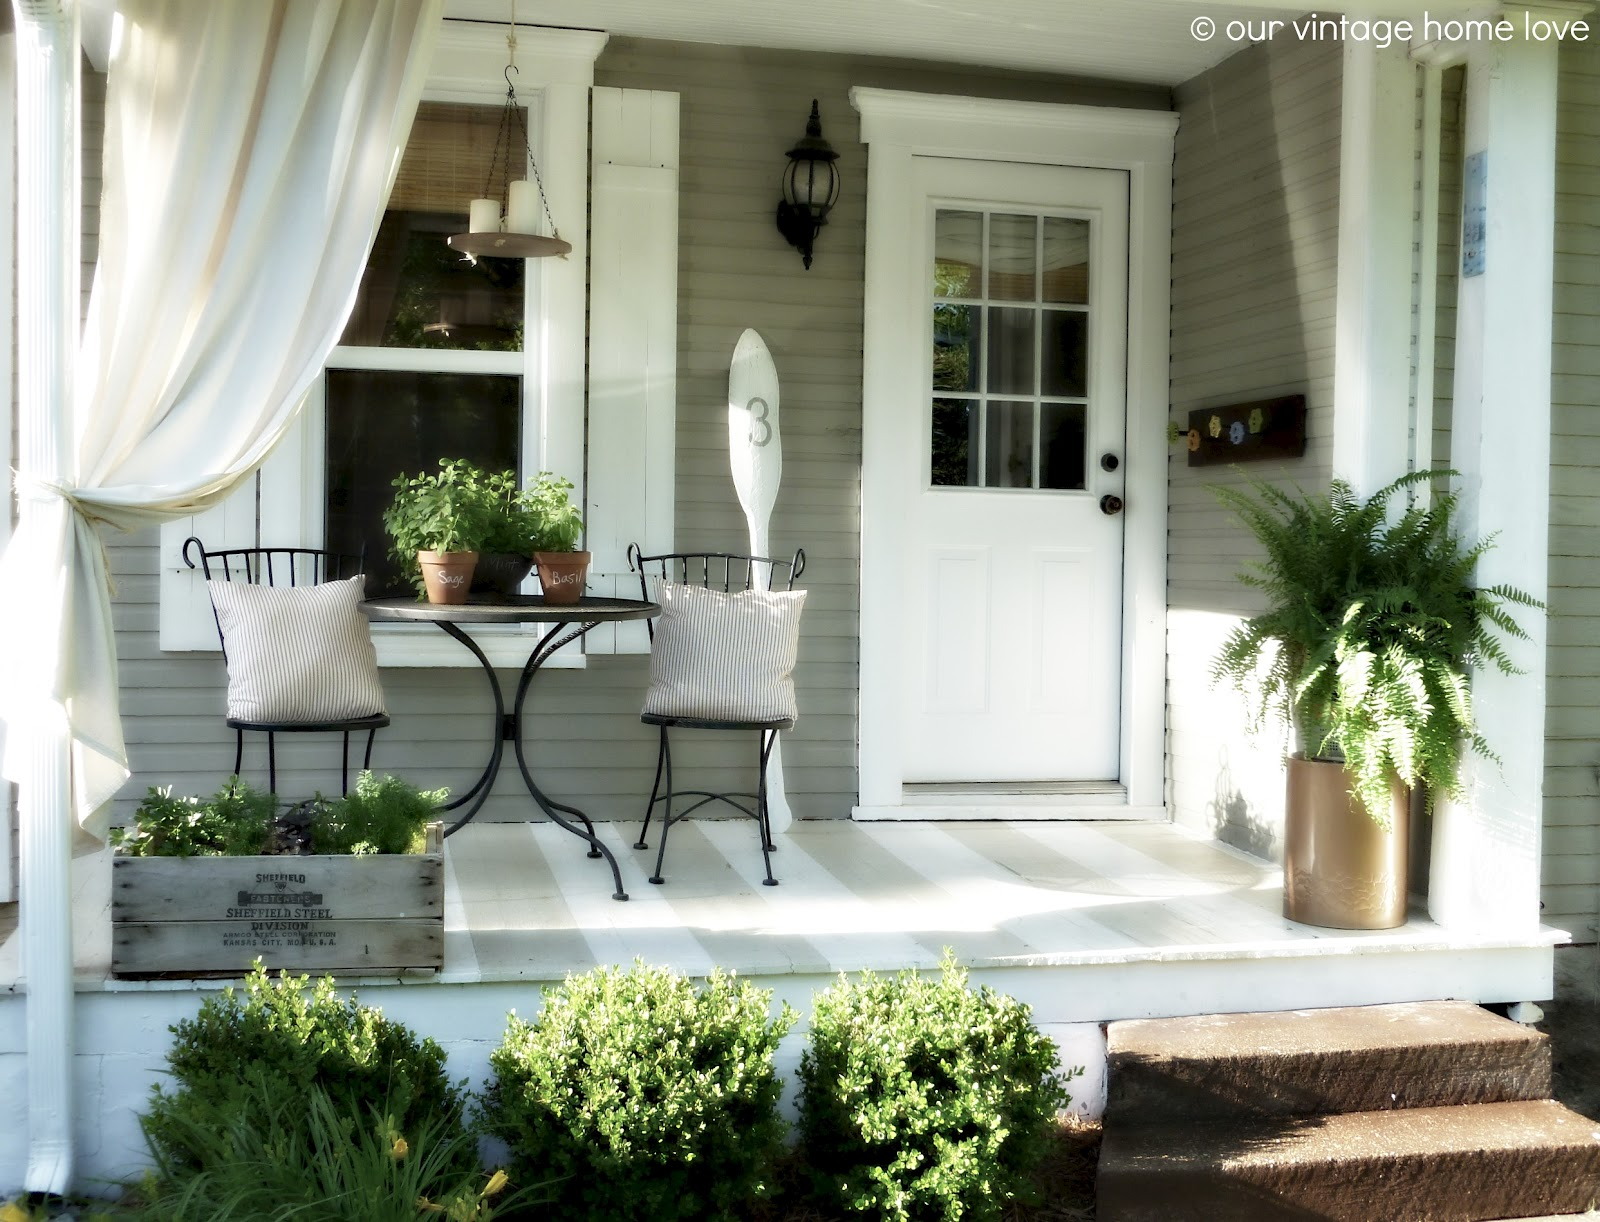 Vintage home love back side porch ideas for summer and an for Small front porch decorating ideas